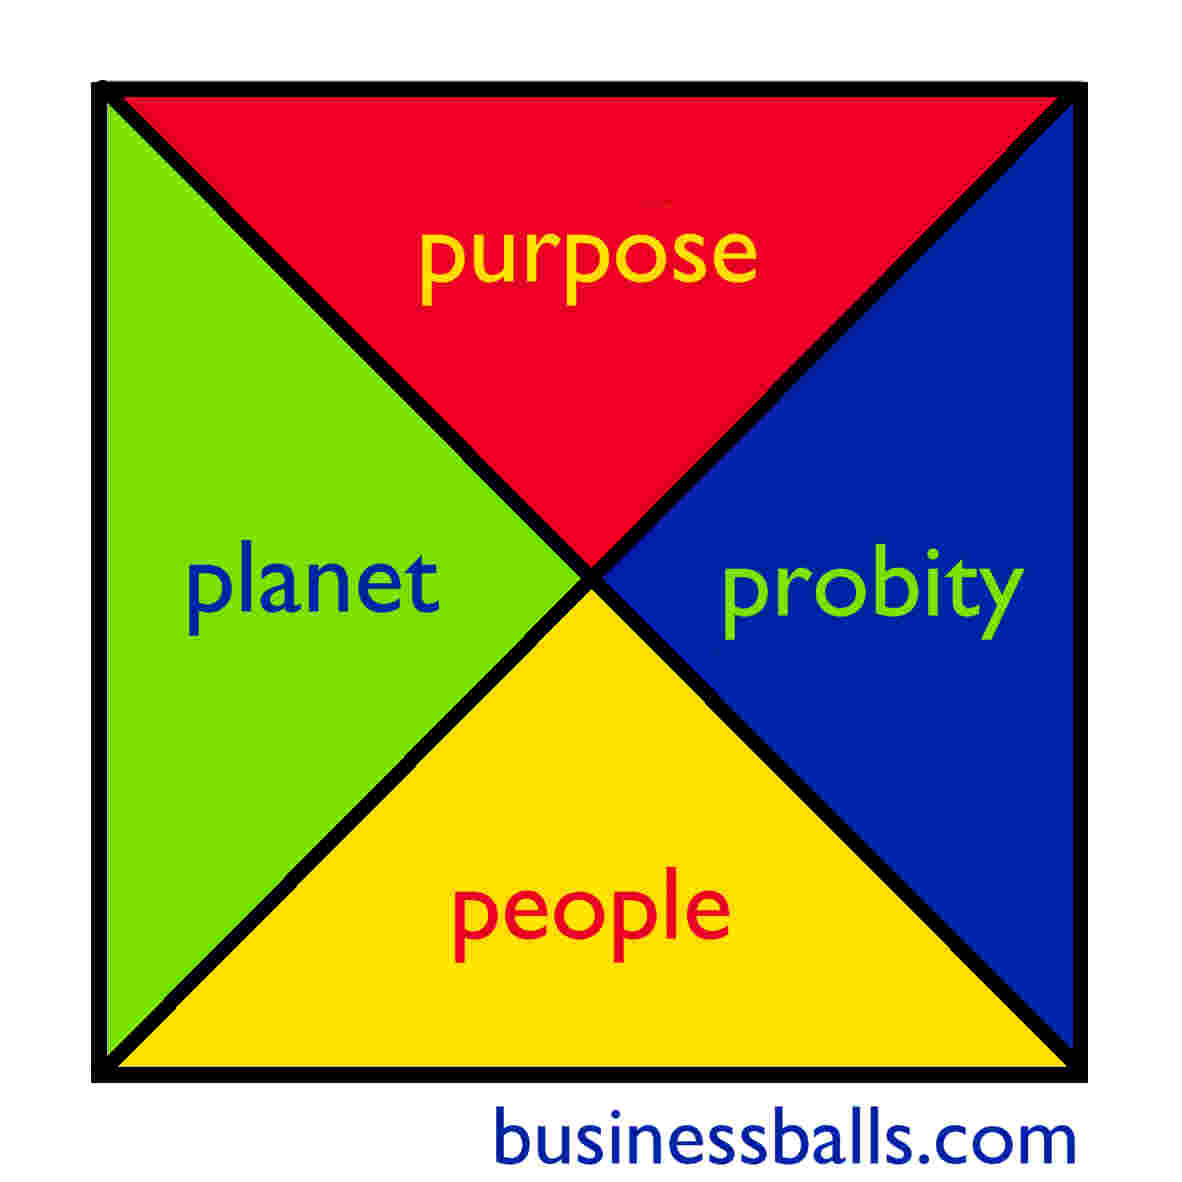 businessballs ethical management diagram